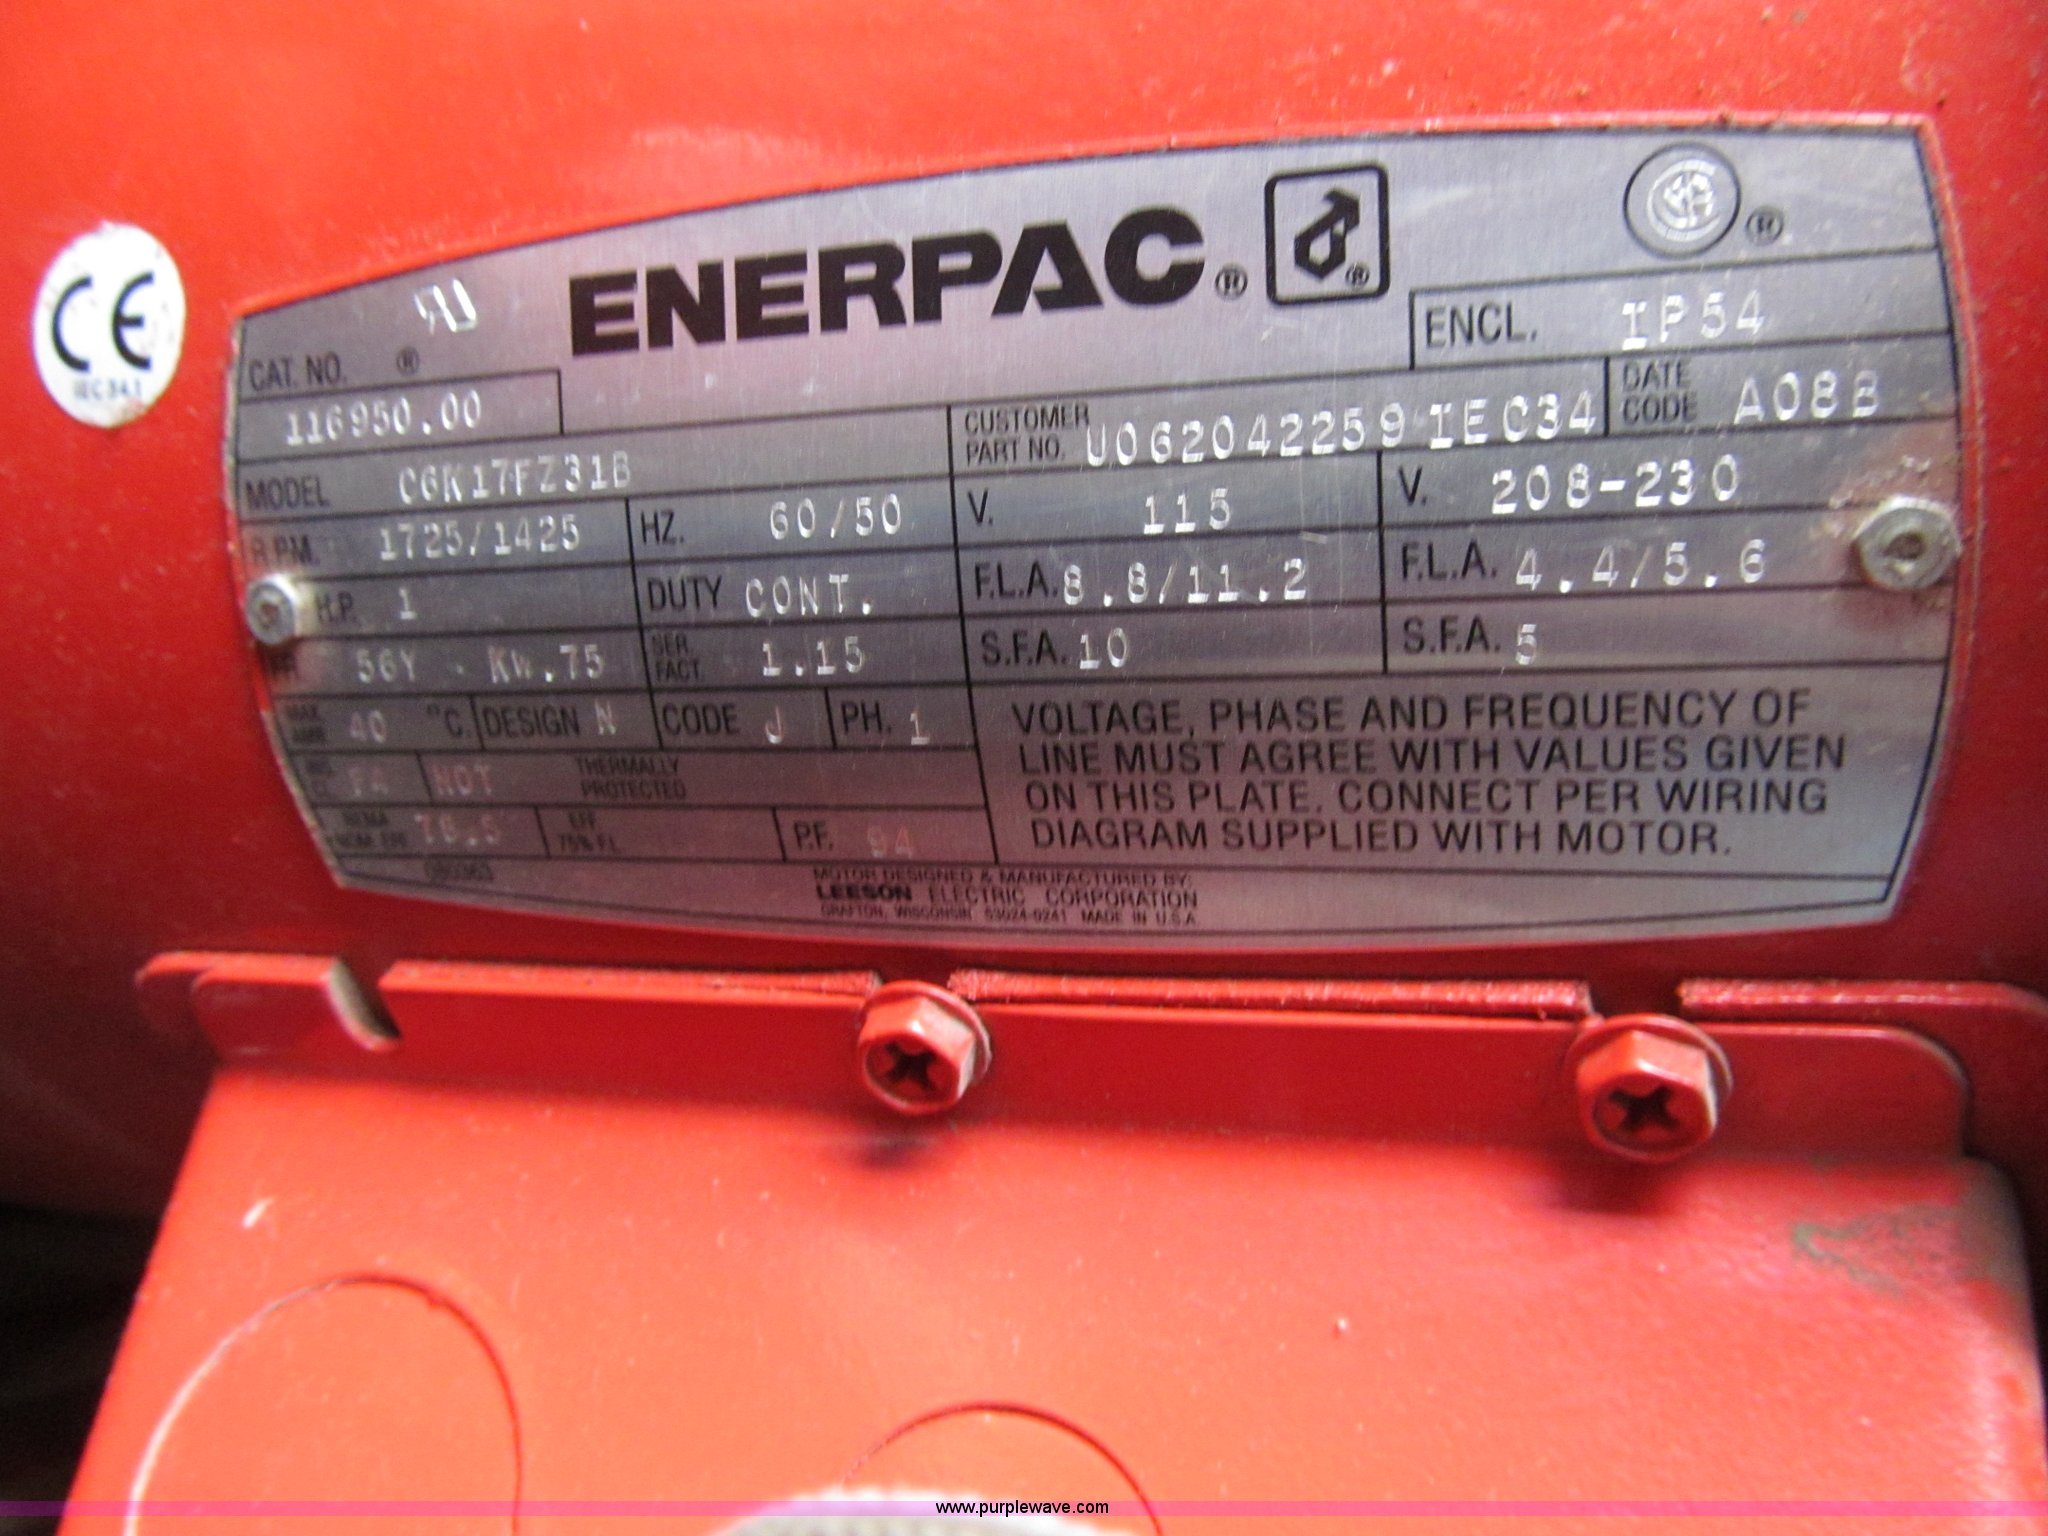 Norco Electric Hydraulic Ram Item J3337 Sold March 11 V Enerpac Wiring Diagram Full Size In New Window